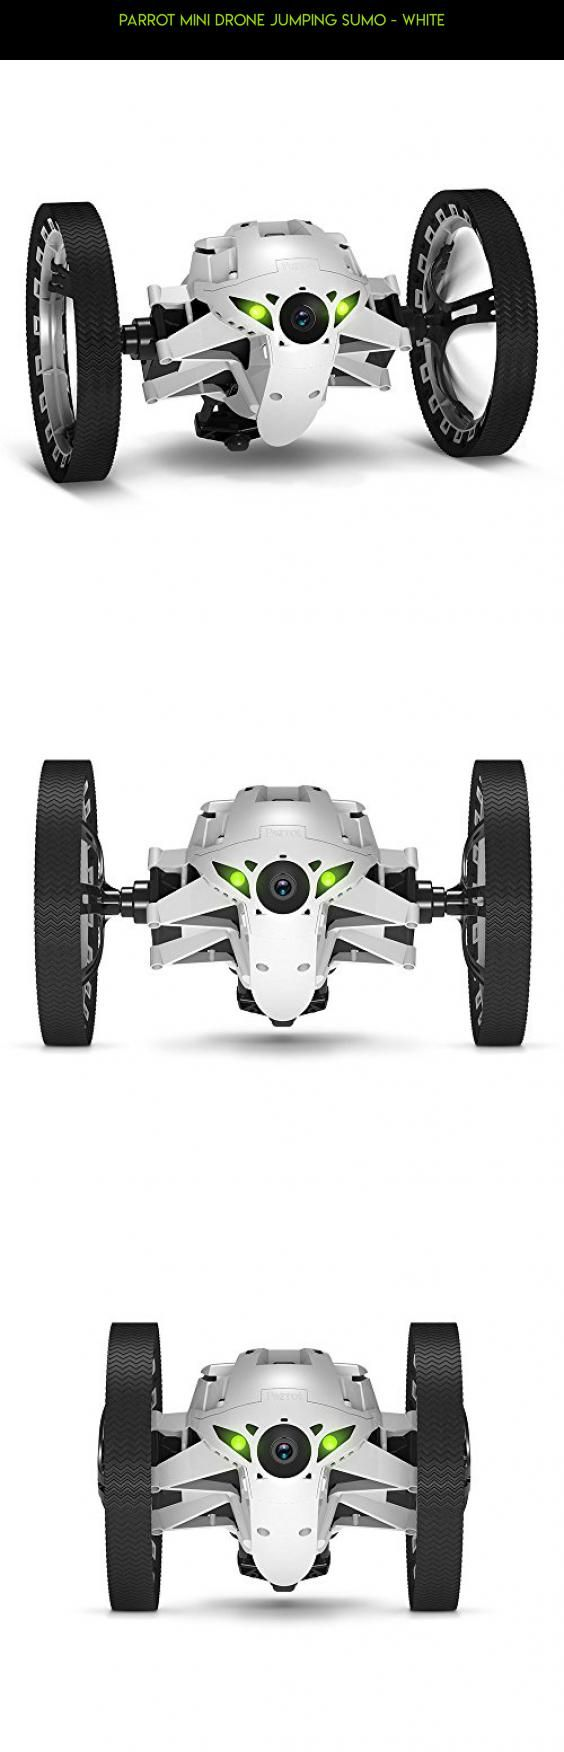 Parrot Mini Drone Jumping Sumo - White #technology #shopping #parts #camera #parrot #drone #plans #fpv #racing #products #tech #gadgets #kit #drone